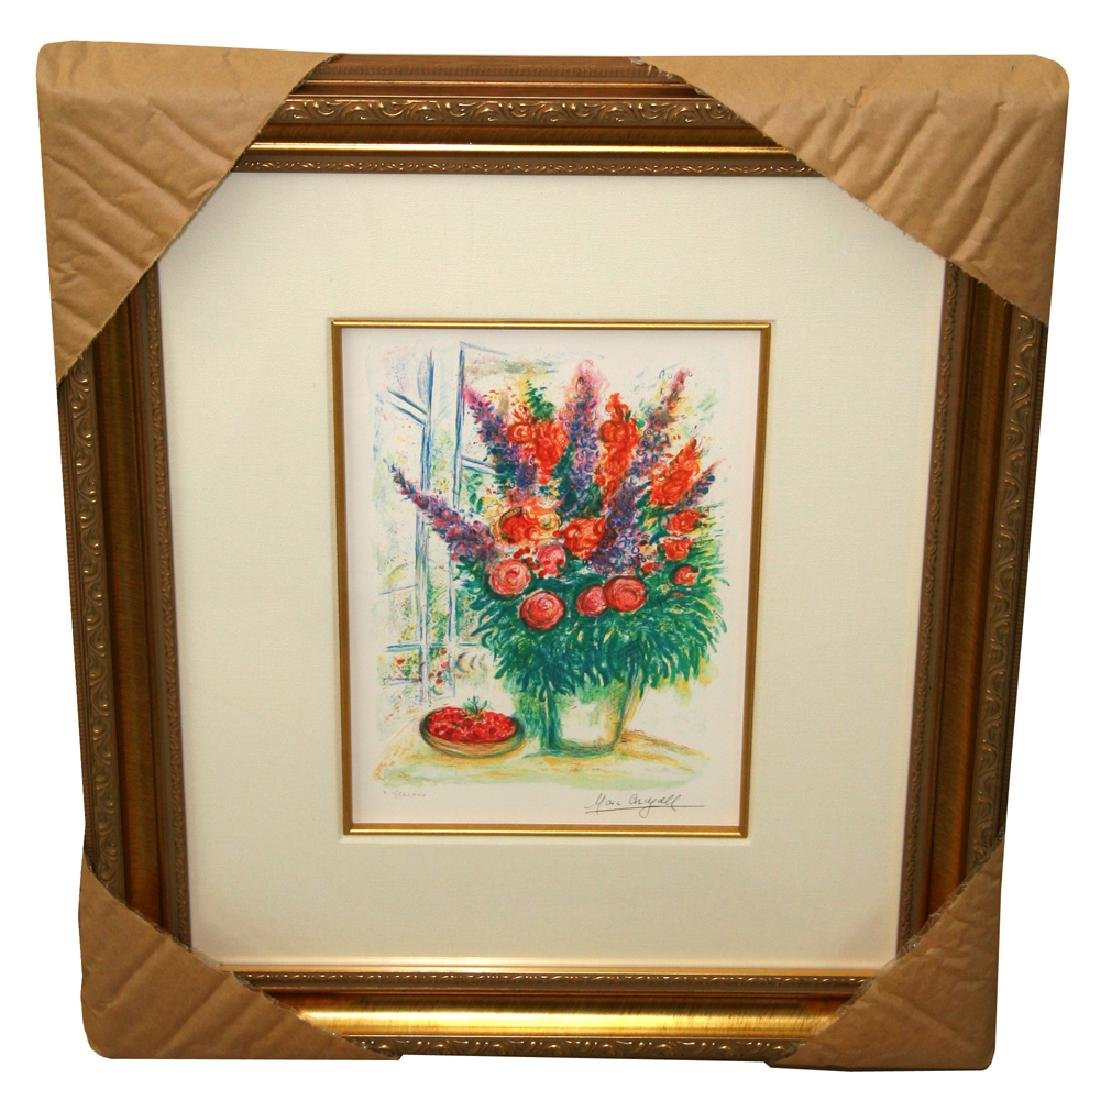 Chagall (After) 'Bowl of Cherries' Museum Framed